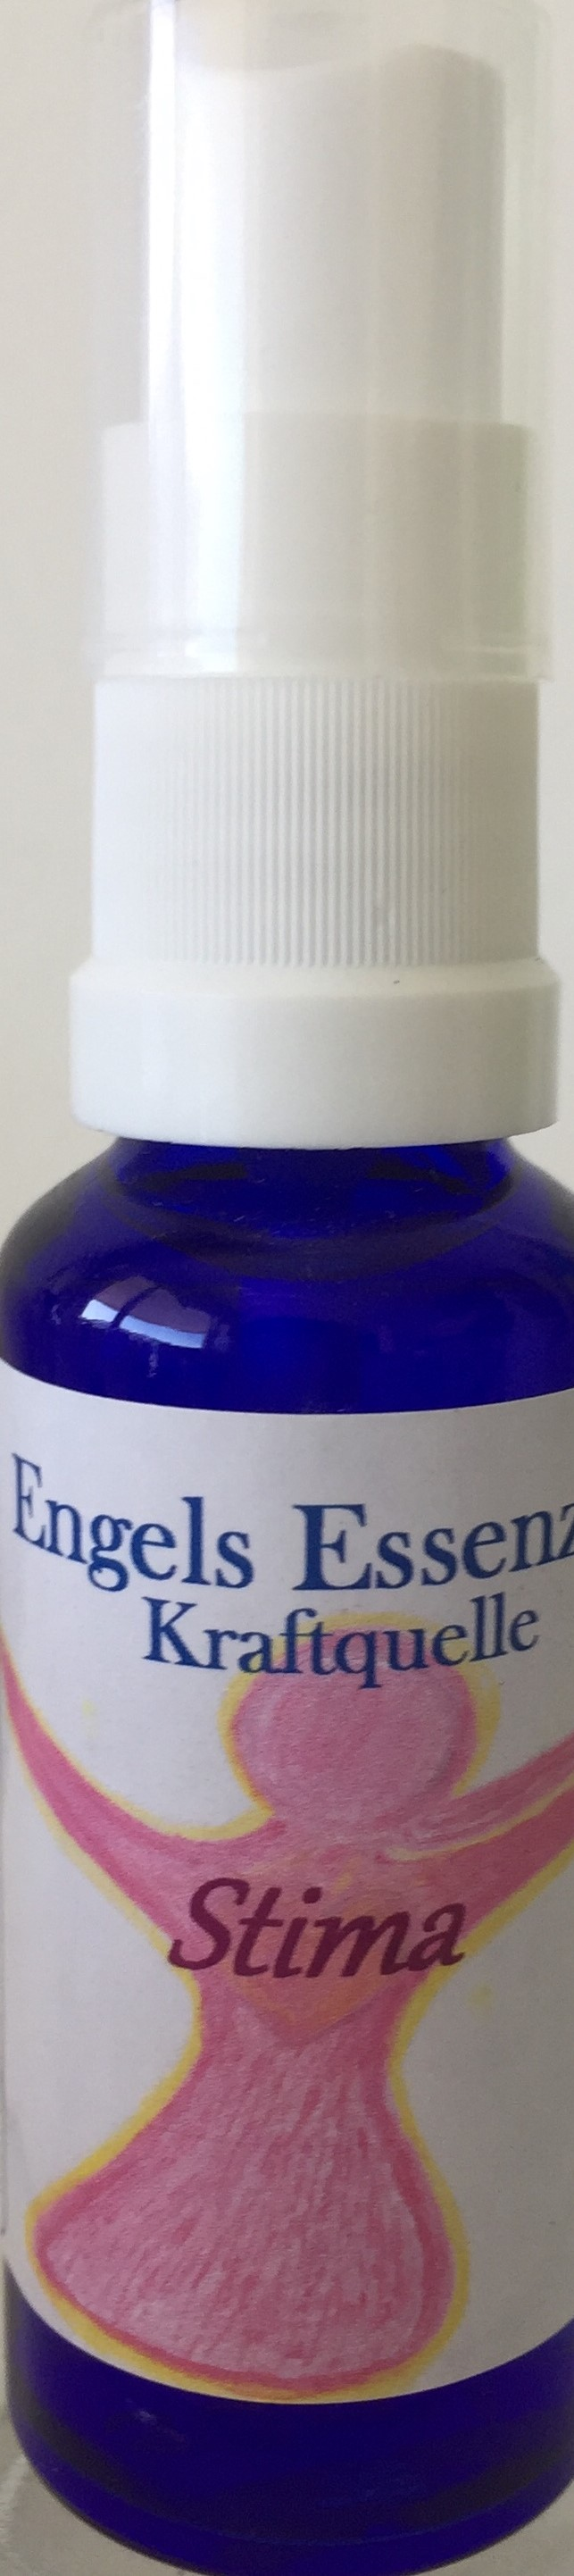 Essenza Angelo della stima 30 ml.